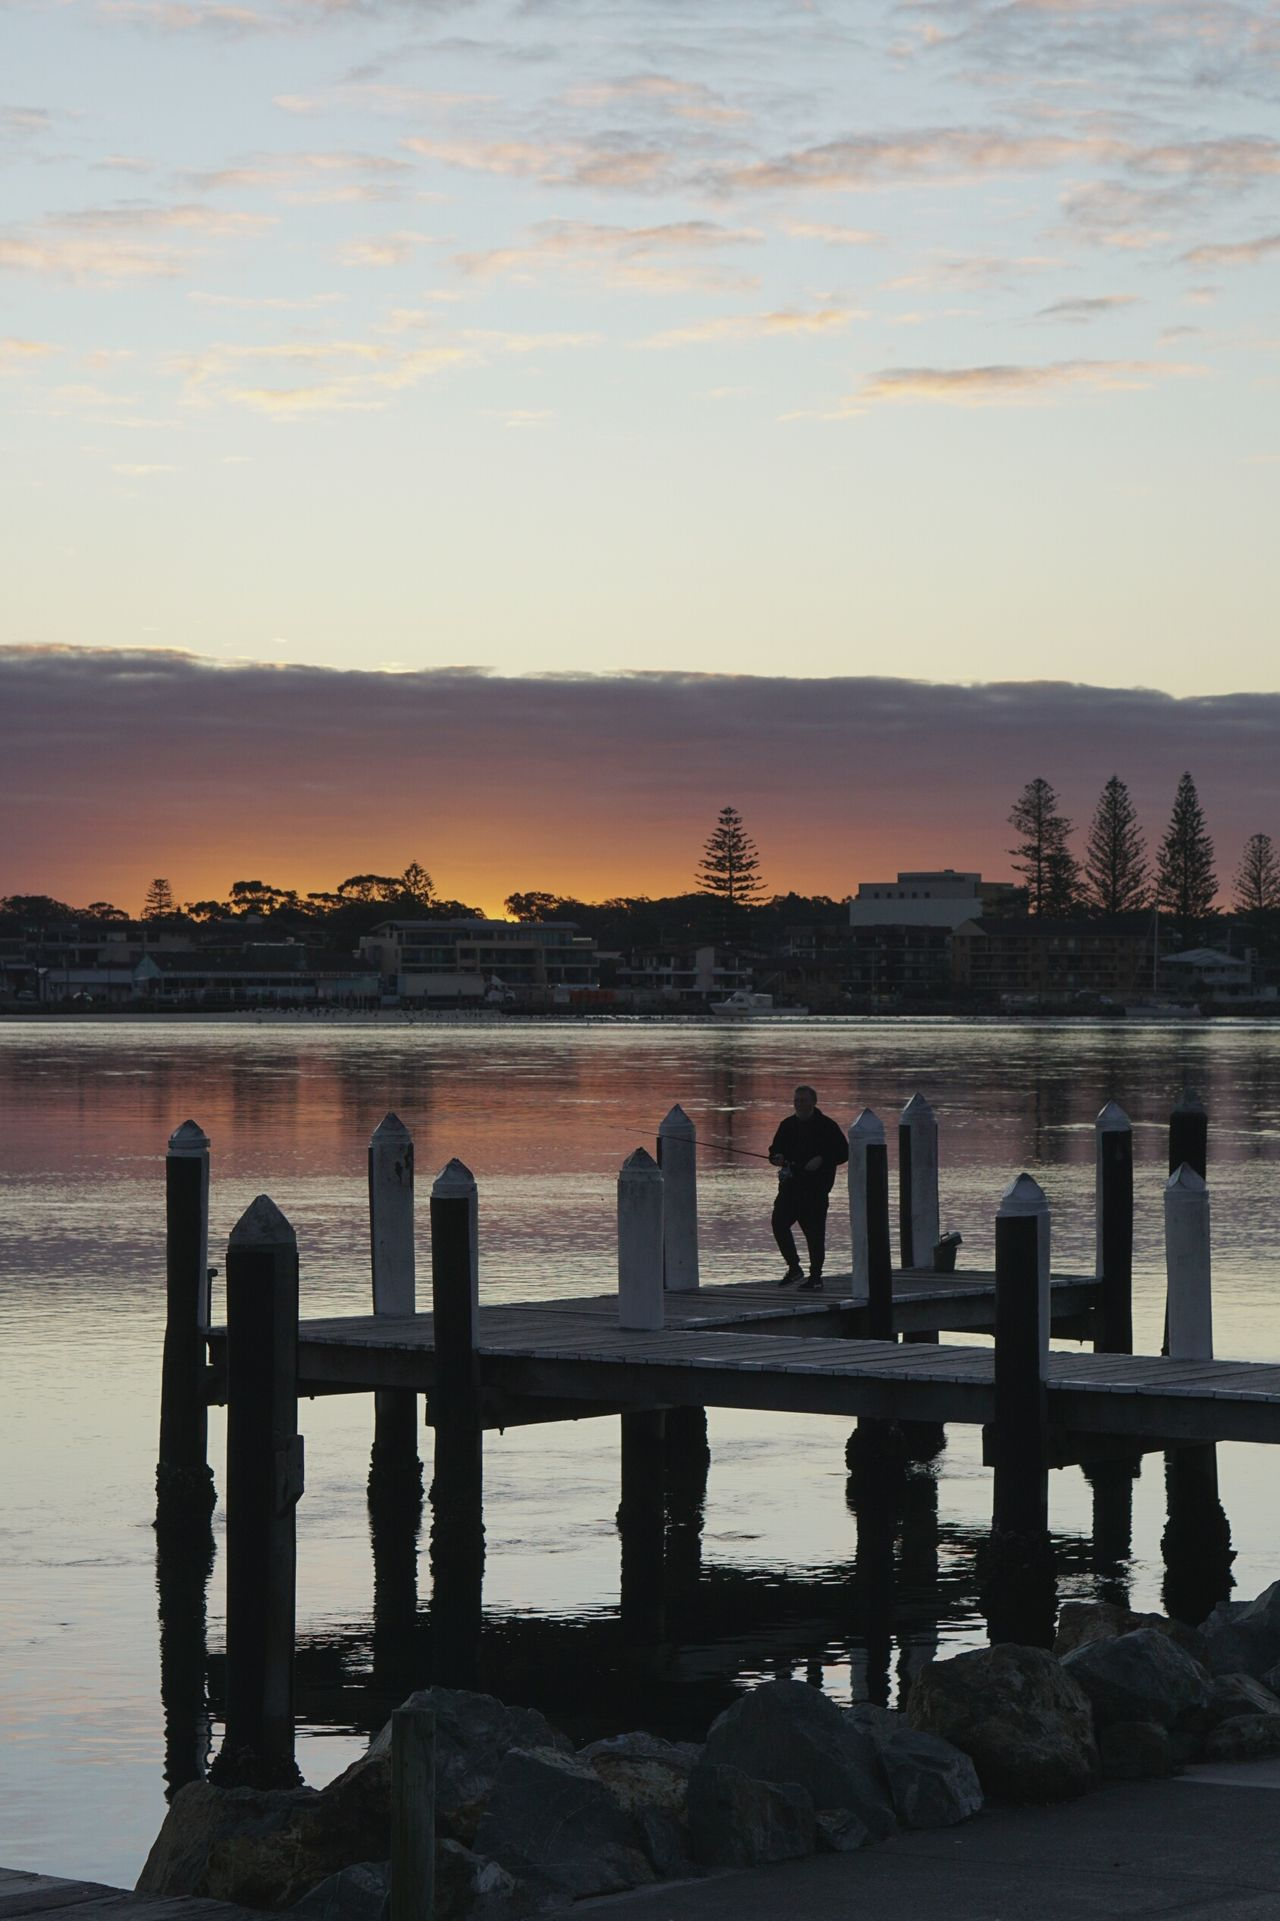 Water Pier Sunset Lake Nature Scenics Fishing Waterfront Tranquility Outdoors Beauty In Nature Forster NswSky EyeEmNewHere Silhouette People Togetherness Bridge - Man Made Structure Adult Day